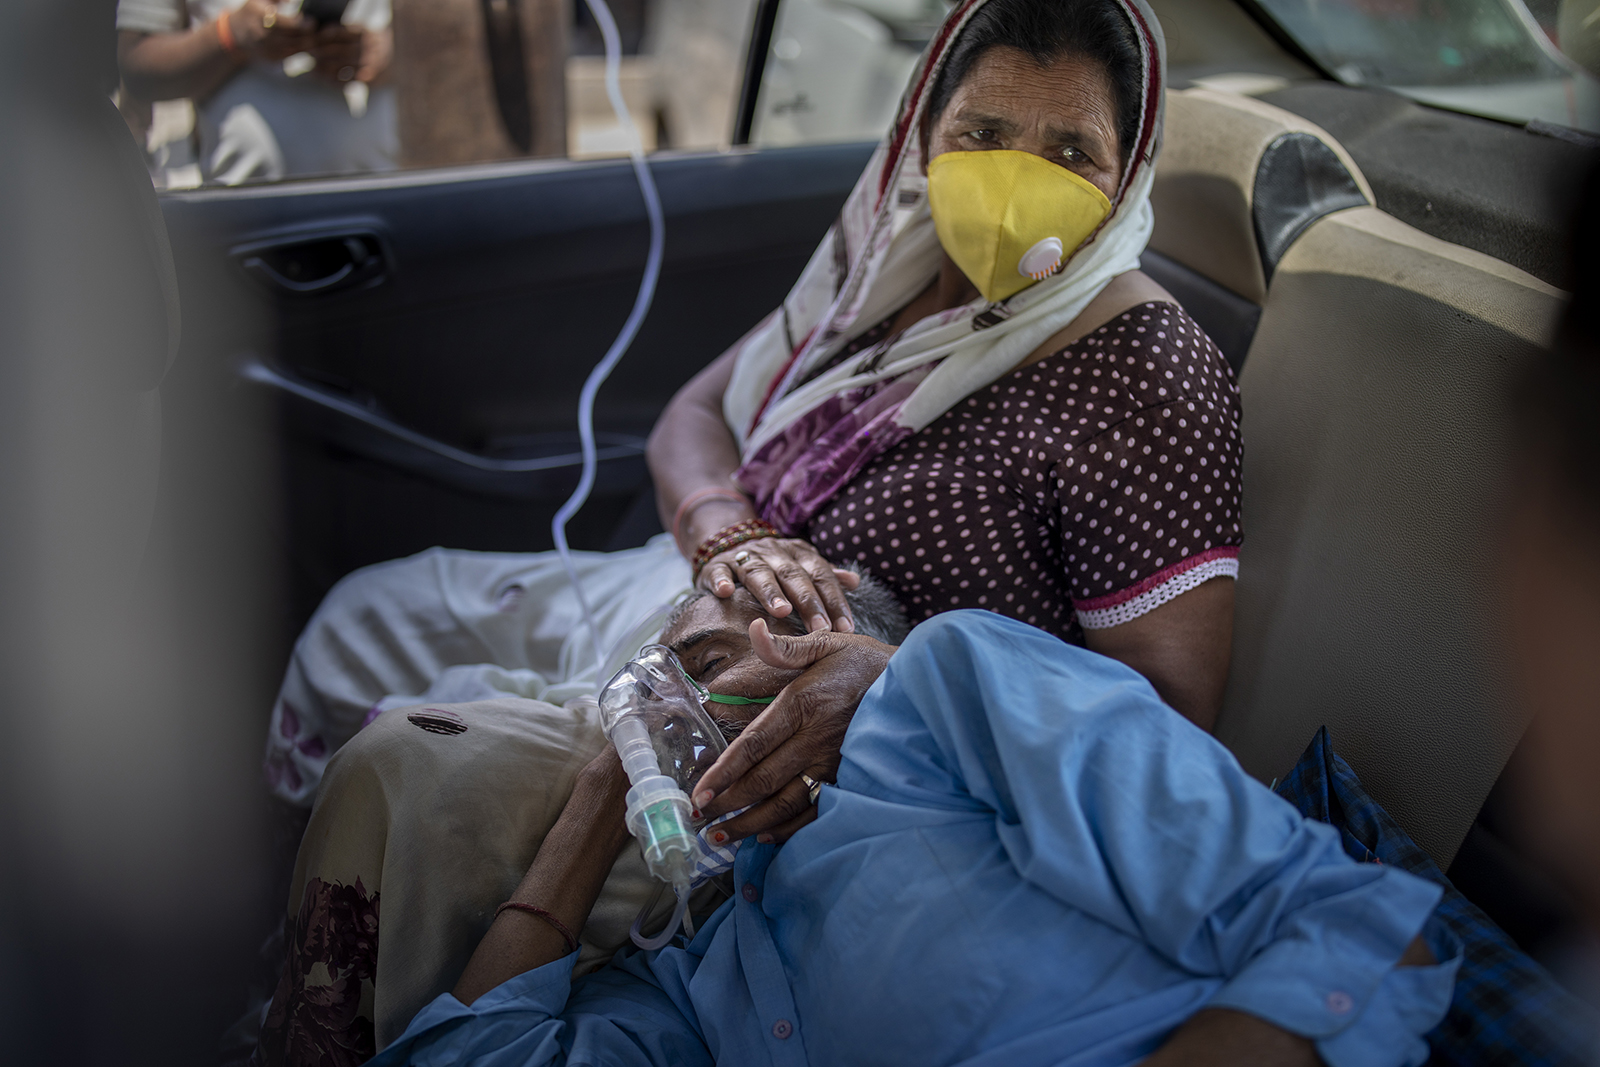 A patient breathes with the help of oxygen provided by a gurdwara, a Sikh house of worship, inside a car in New Delhi on April 24, 2021. India's medical oxygen shortage has become so dire that this gurdwara began offering free breathing sessions with shared tanks to COVID-19 patients waiting for a hospital bed. They arrive in their cars, on foot or in three-wheeled taxis, desperate for a mask and tube attached to the precious oxygen tanks outside the gurdwara in a neighborhood outside New Delhi. (AP Photo/Altaf Qadri)